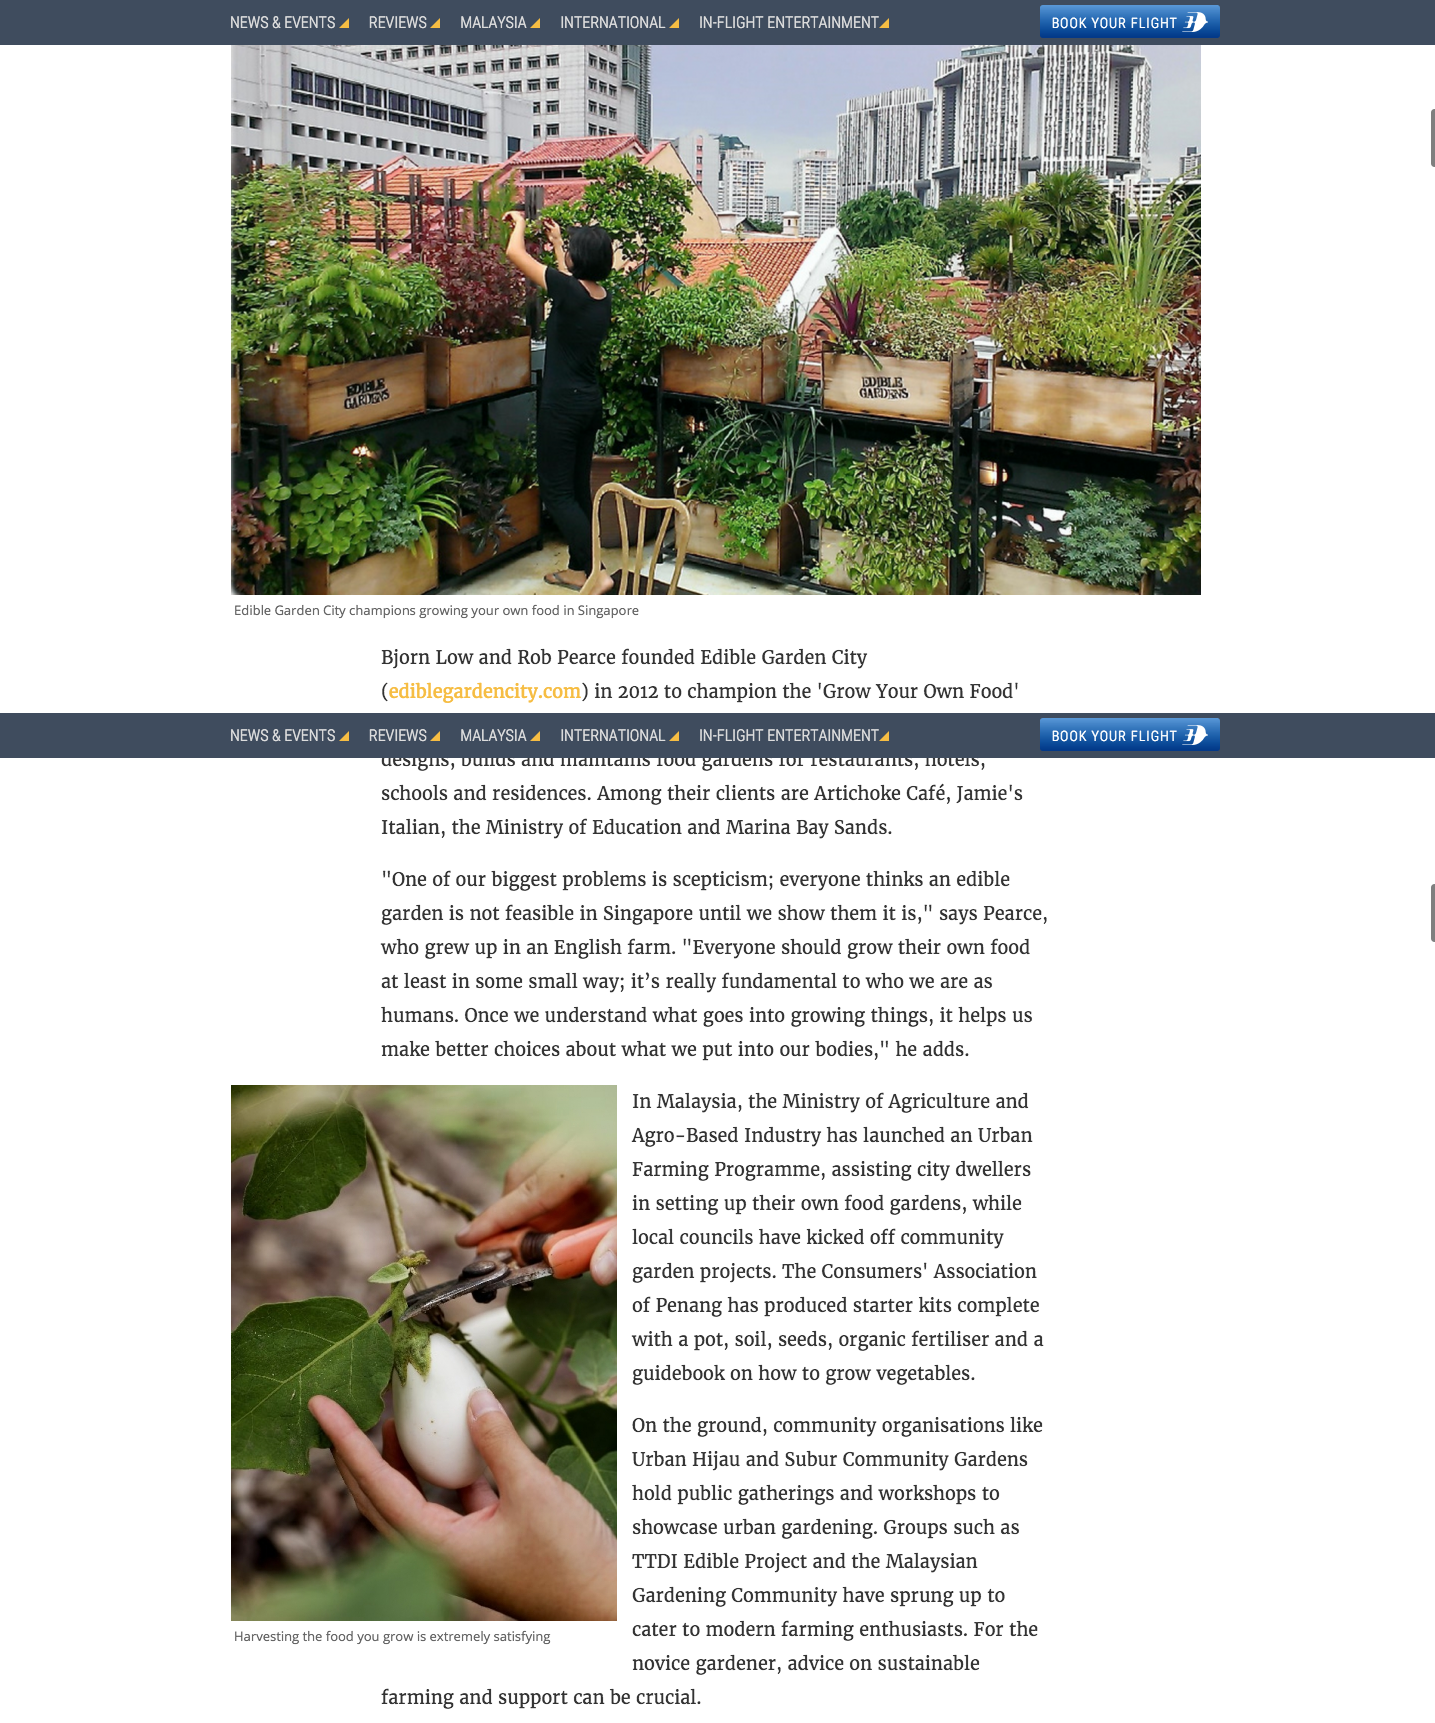 Going Places - Gardening Projects Are Bringing Out Gre...- Malaysia Airlines In-Flight Magazine2